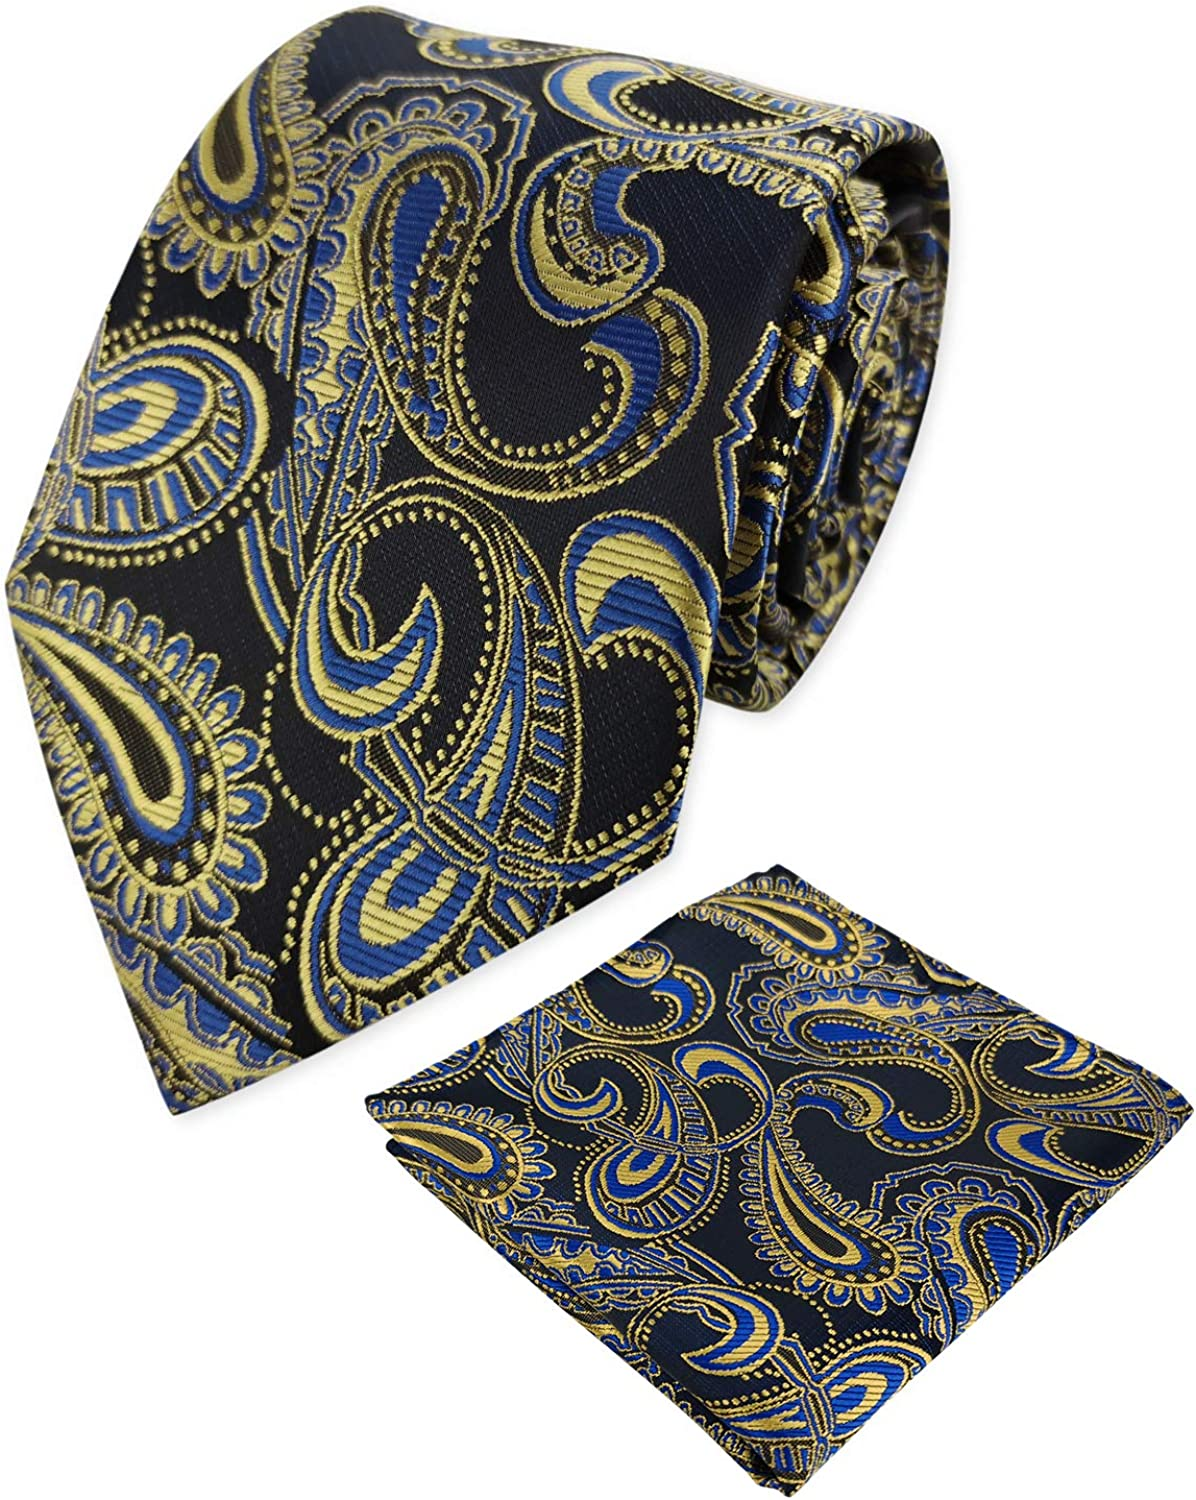 KOOELLE Mens Classic Paisley Jacquard Necktie Woven Ties Set with Pocket Square